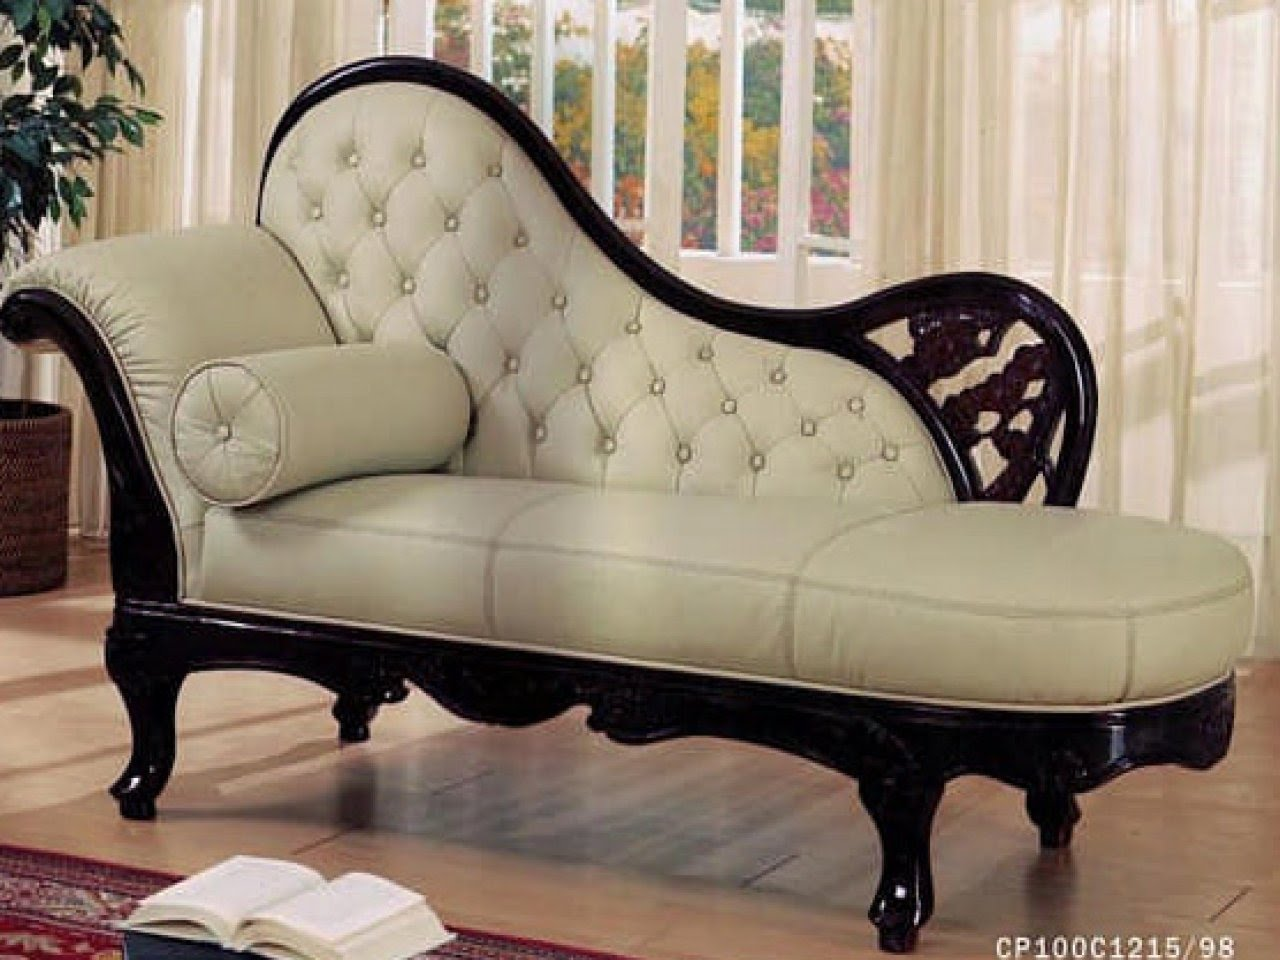 Leather chaise lounge chair antique chaise lounge for .  sc 1 st  Visual Hunt & Lounge Chairs For Bedroom - Visual Hunt